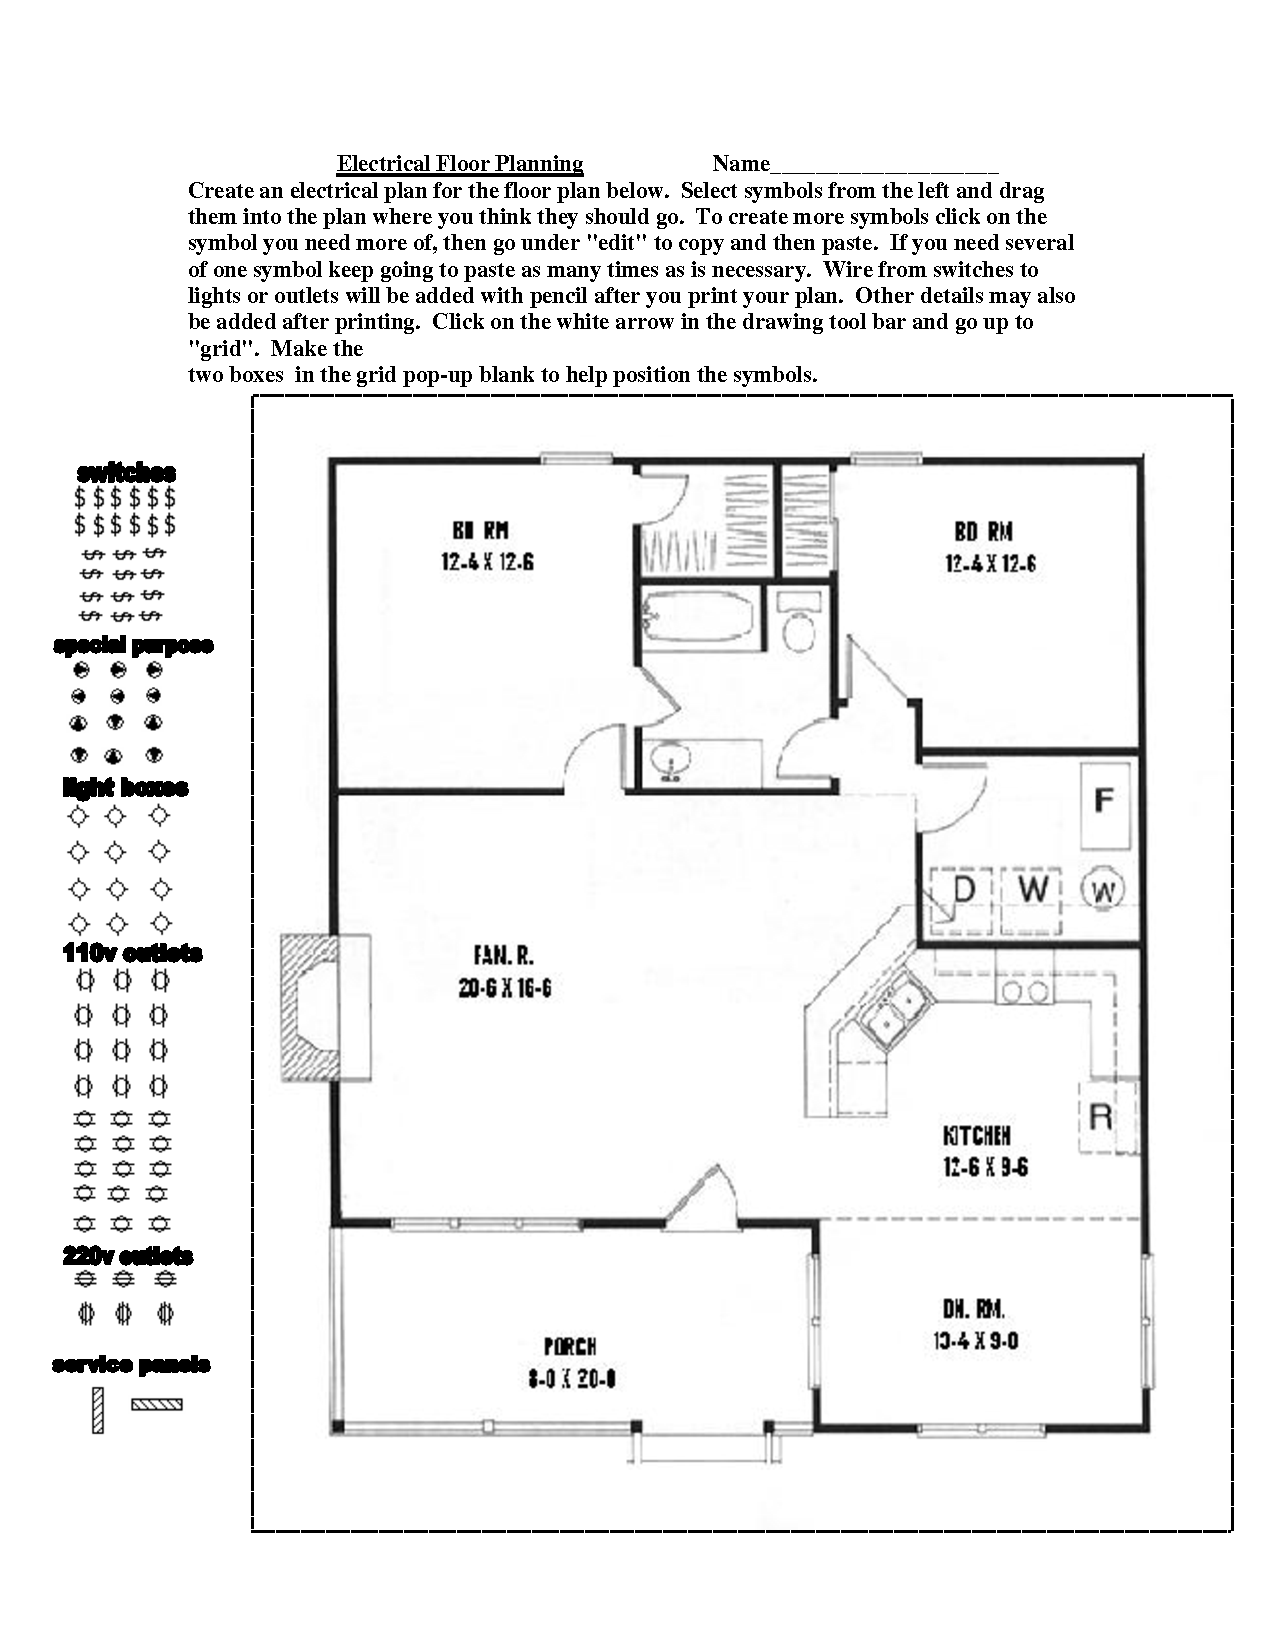 Free clip art site plan legend cliparts for Free floor plan website